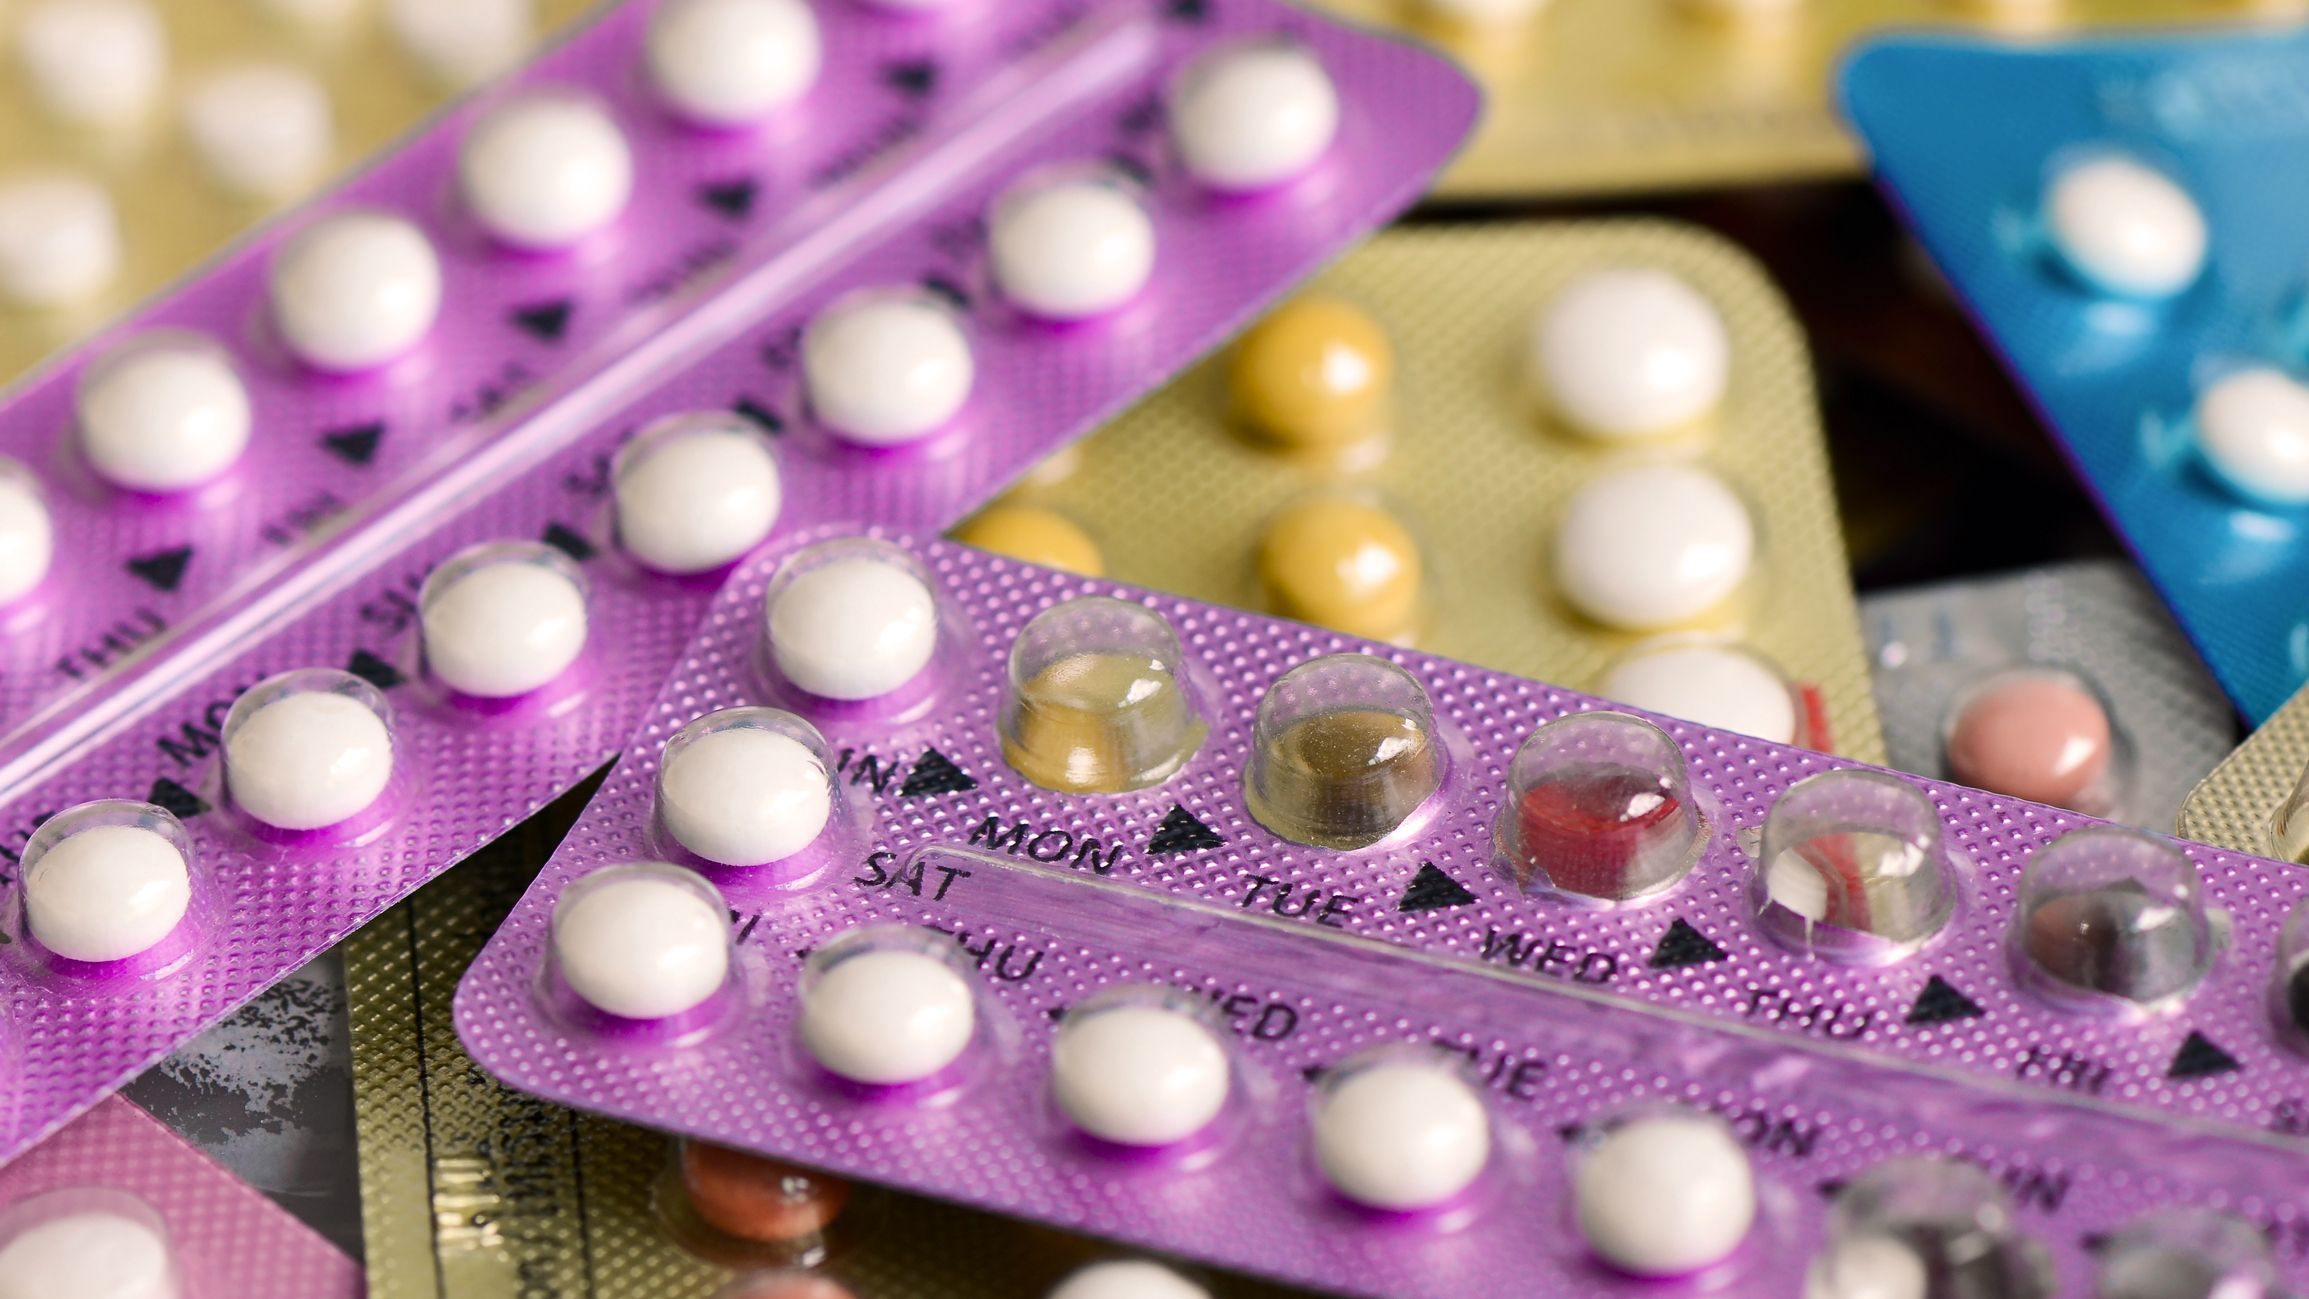 birth control getty stock